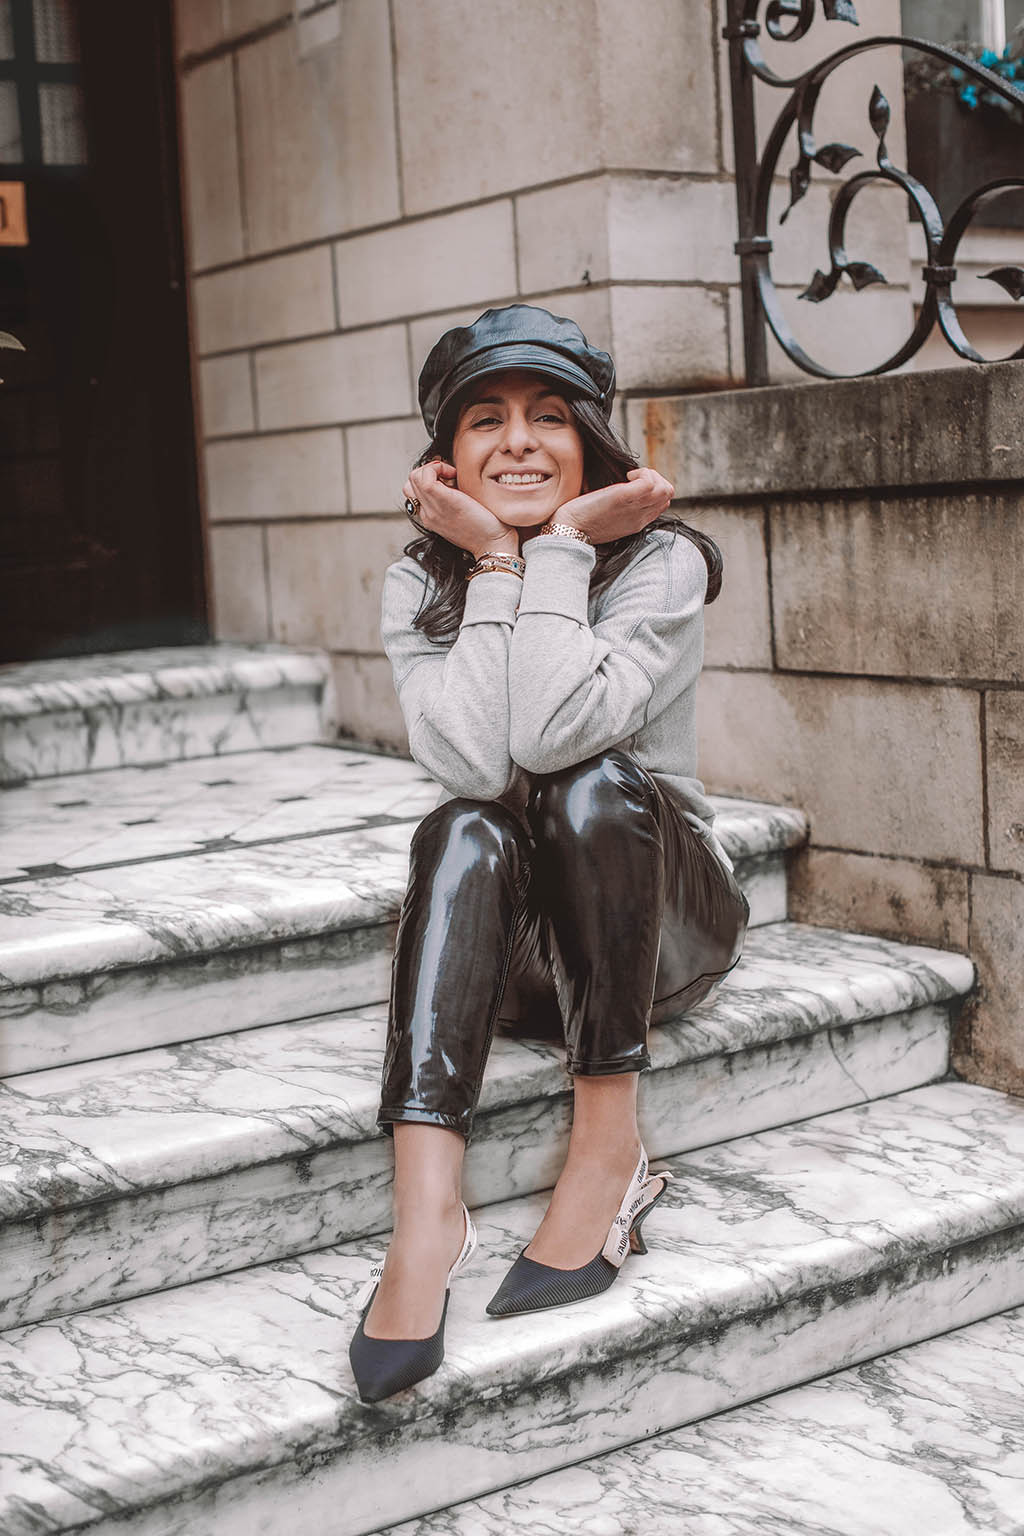 eb24d02e7 Fashion blogger Shloka Narang of The Silk Sneaker shares how to style a  vinyl trousers outfit